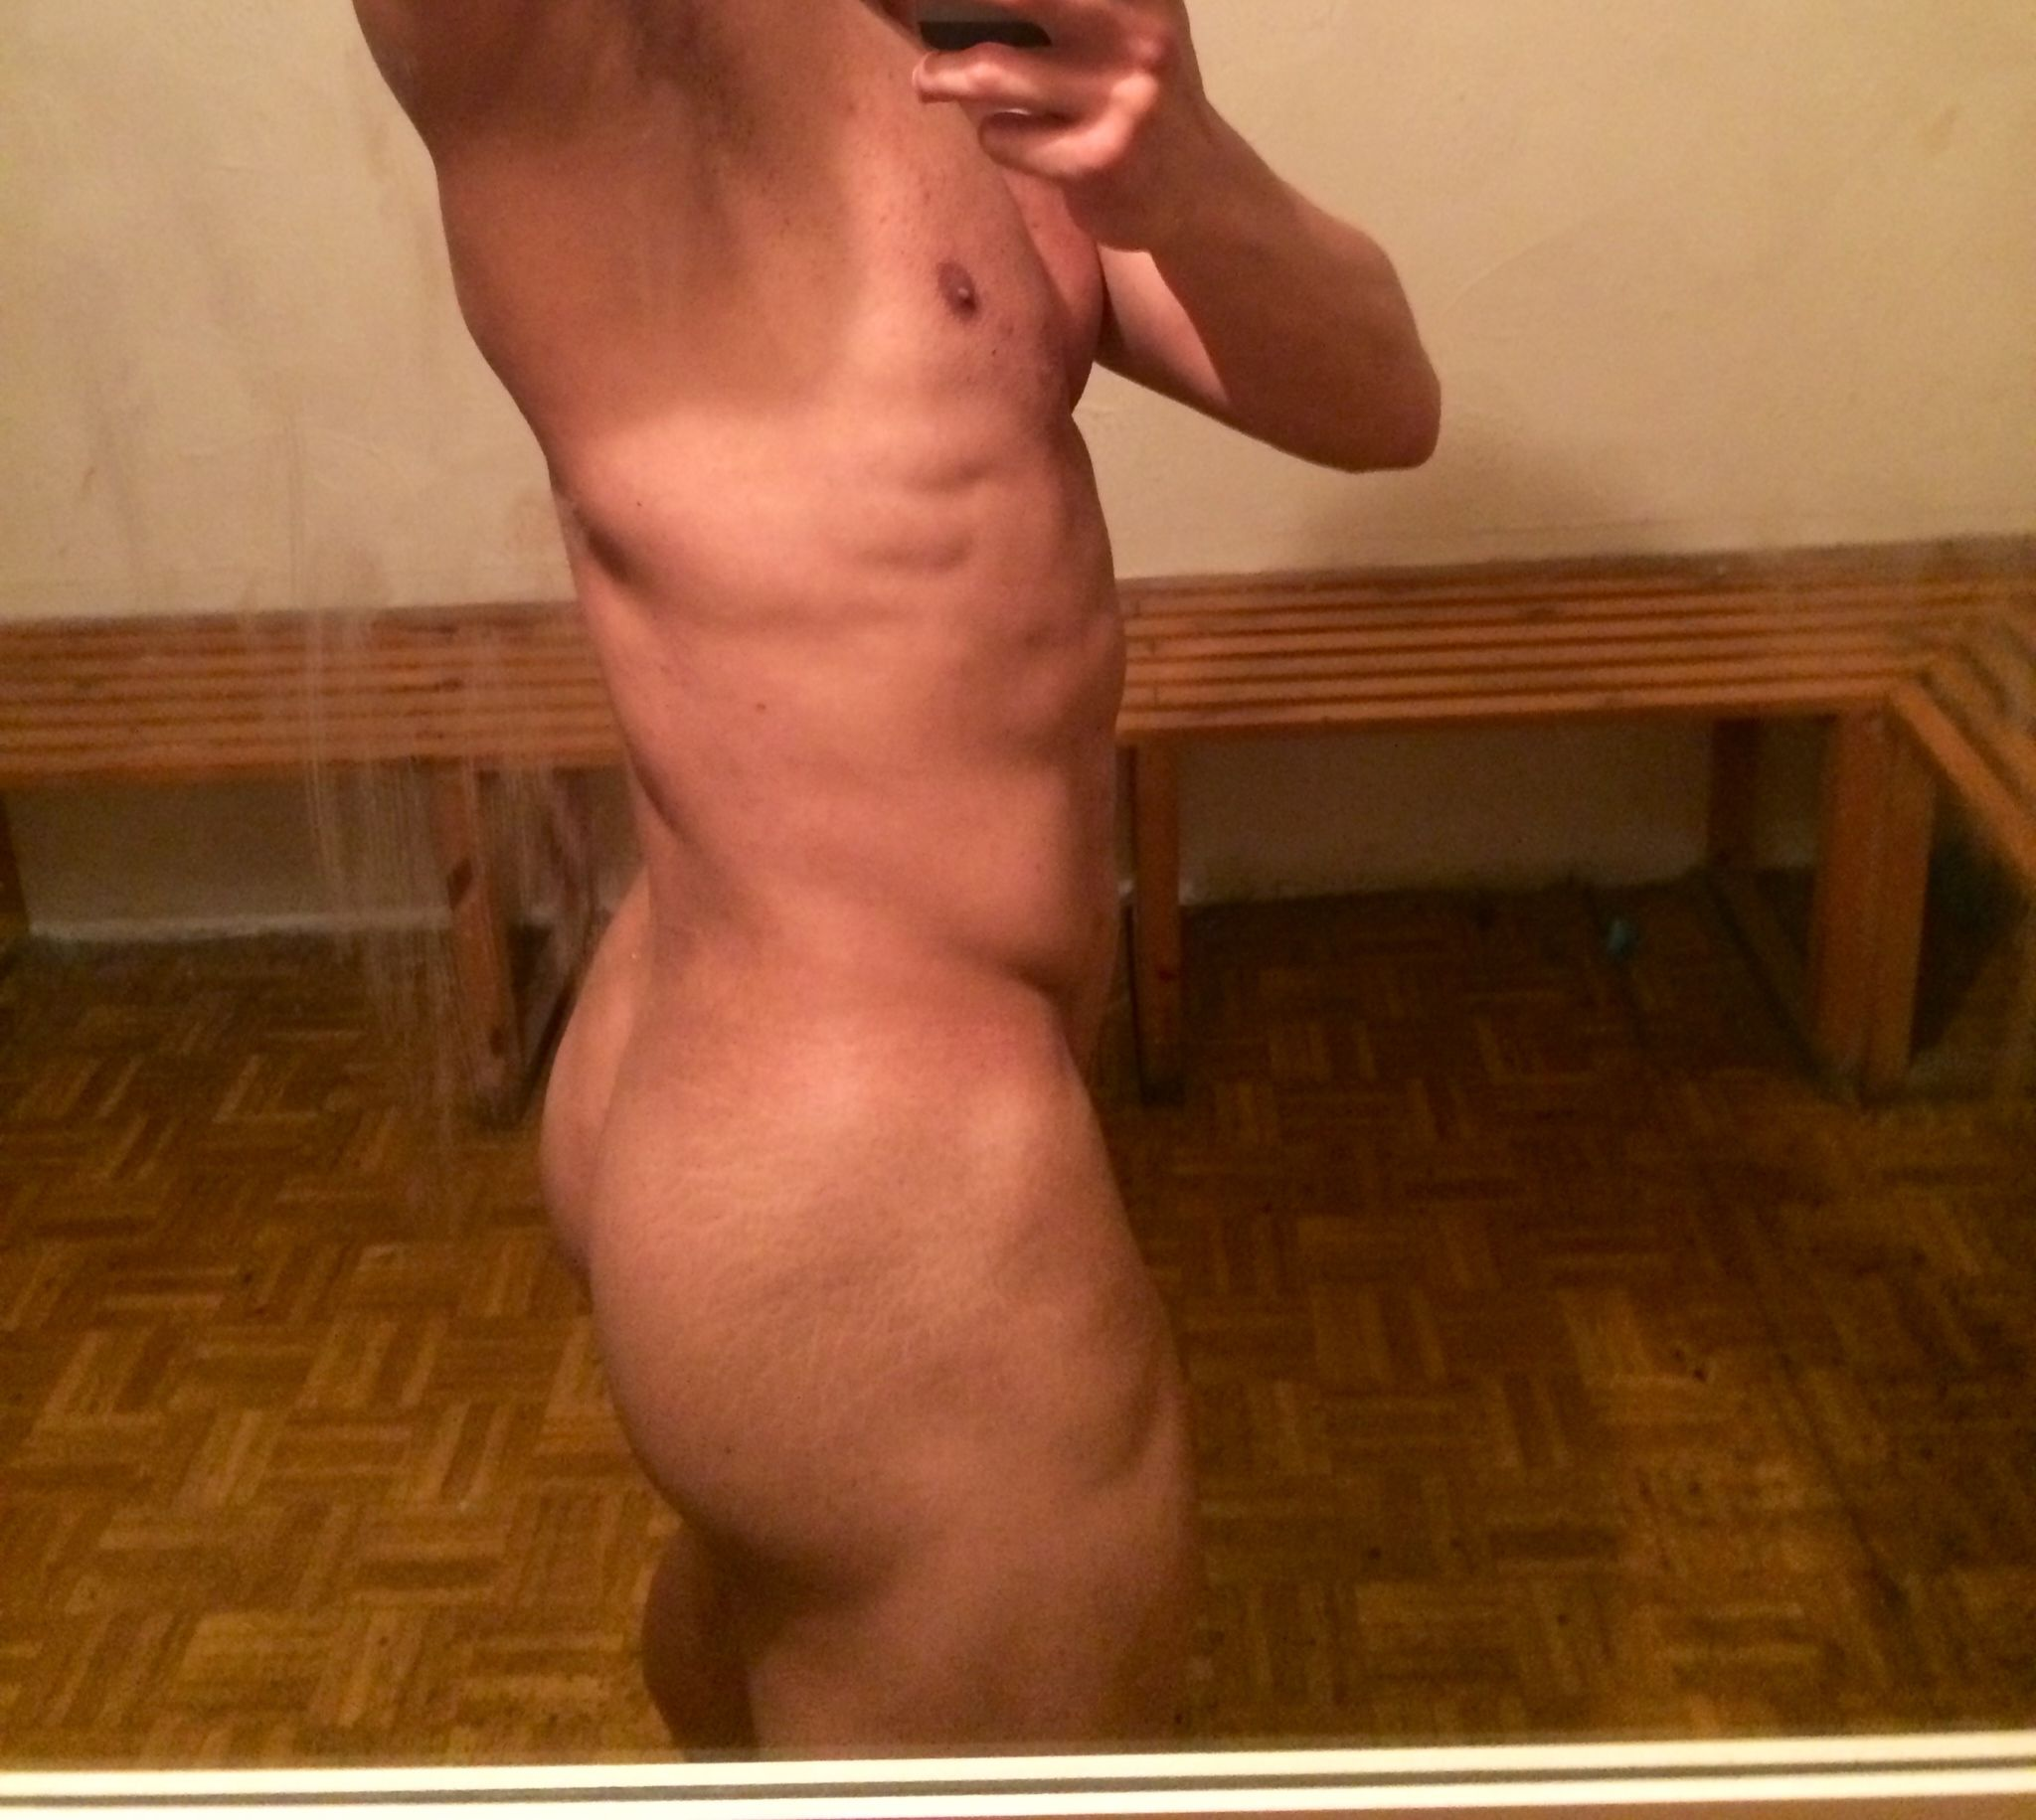 AaronBurnsXXX Birmingham West Midlands B12 British Escort